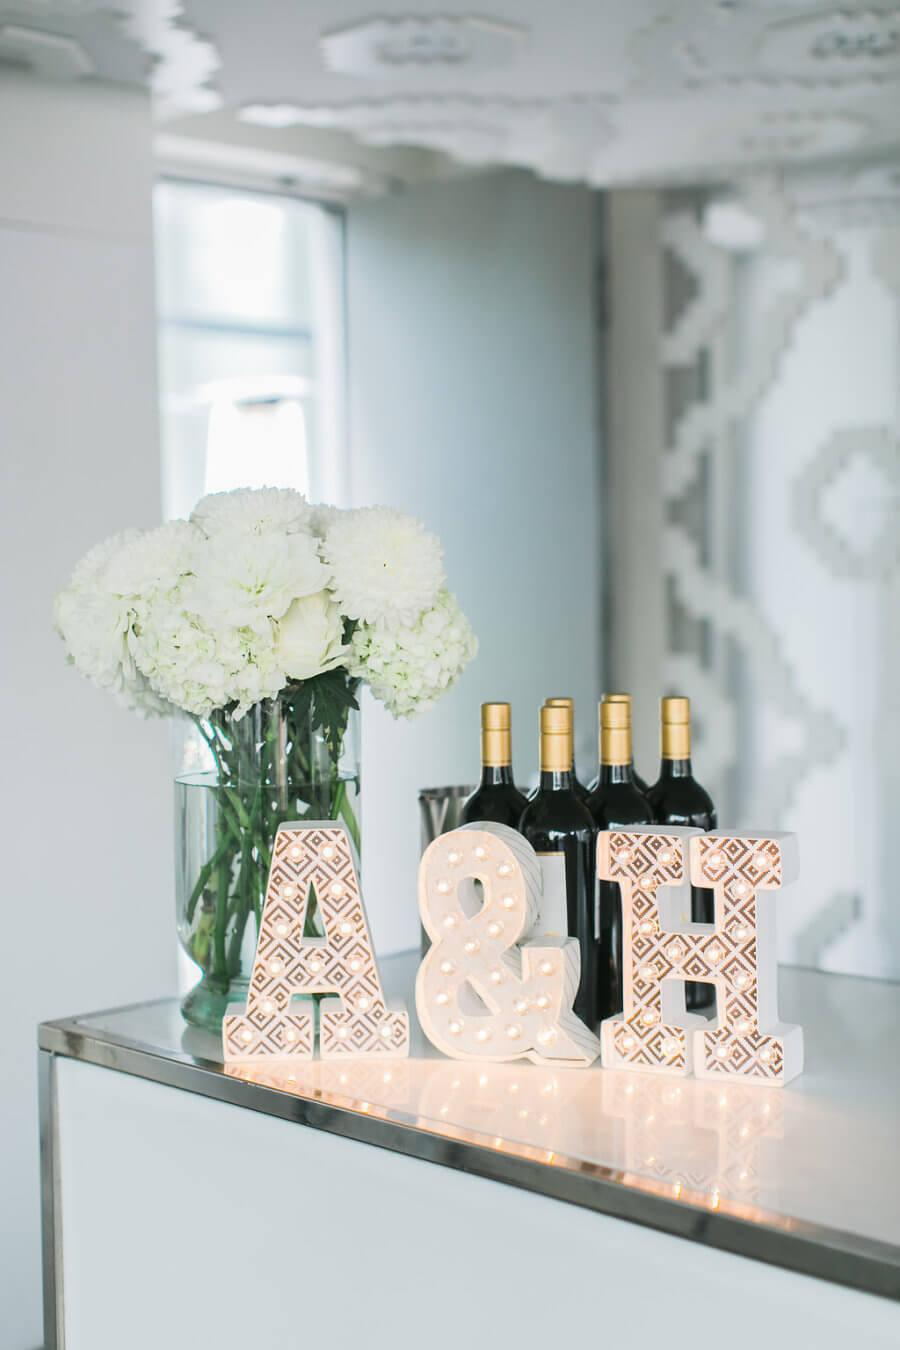 Flowers and Drink Bottles at Simple Engagement Party